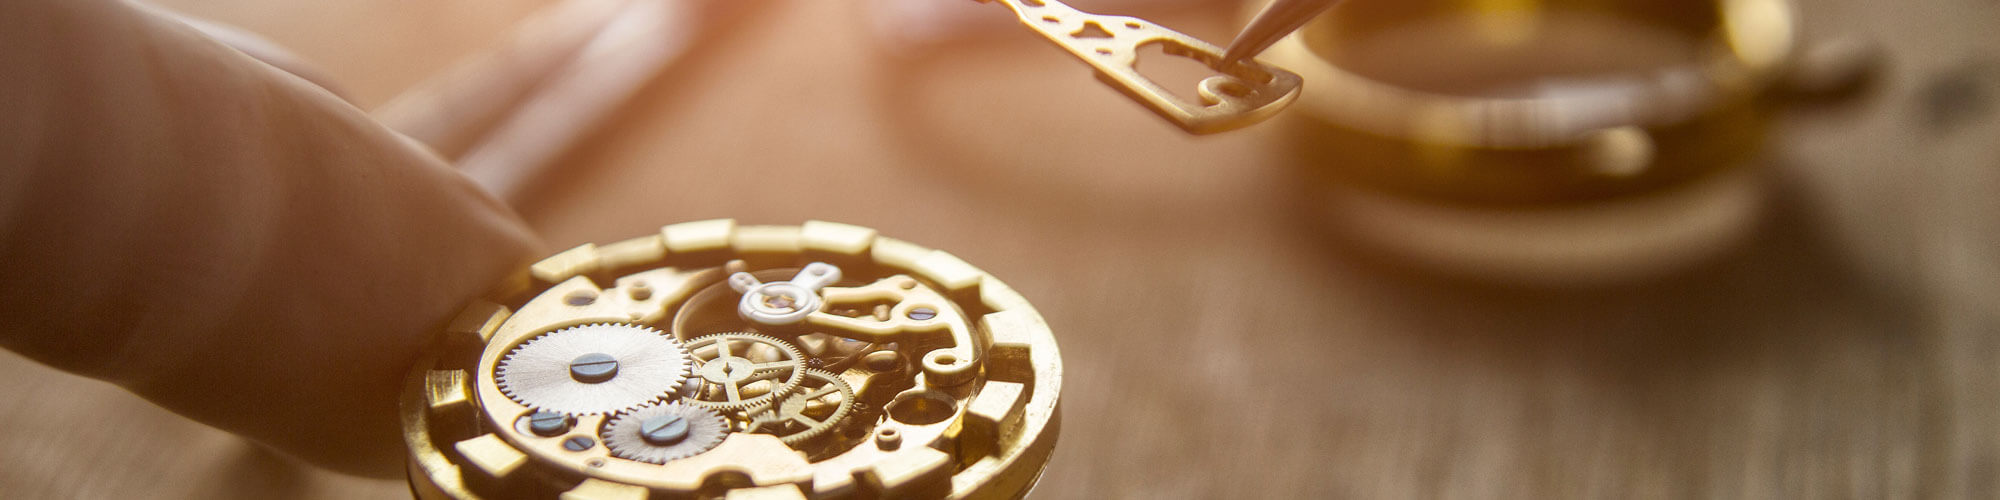 Close up of a pocket watch being repaired by a professional jeweler